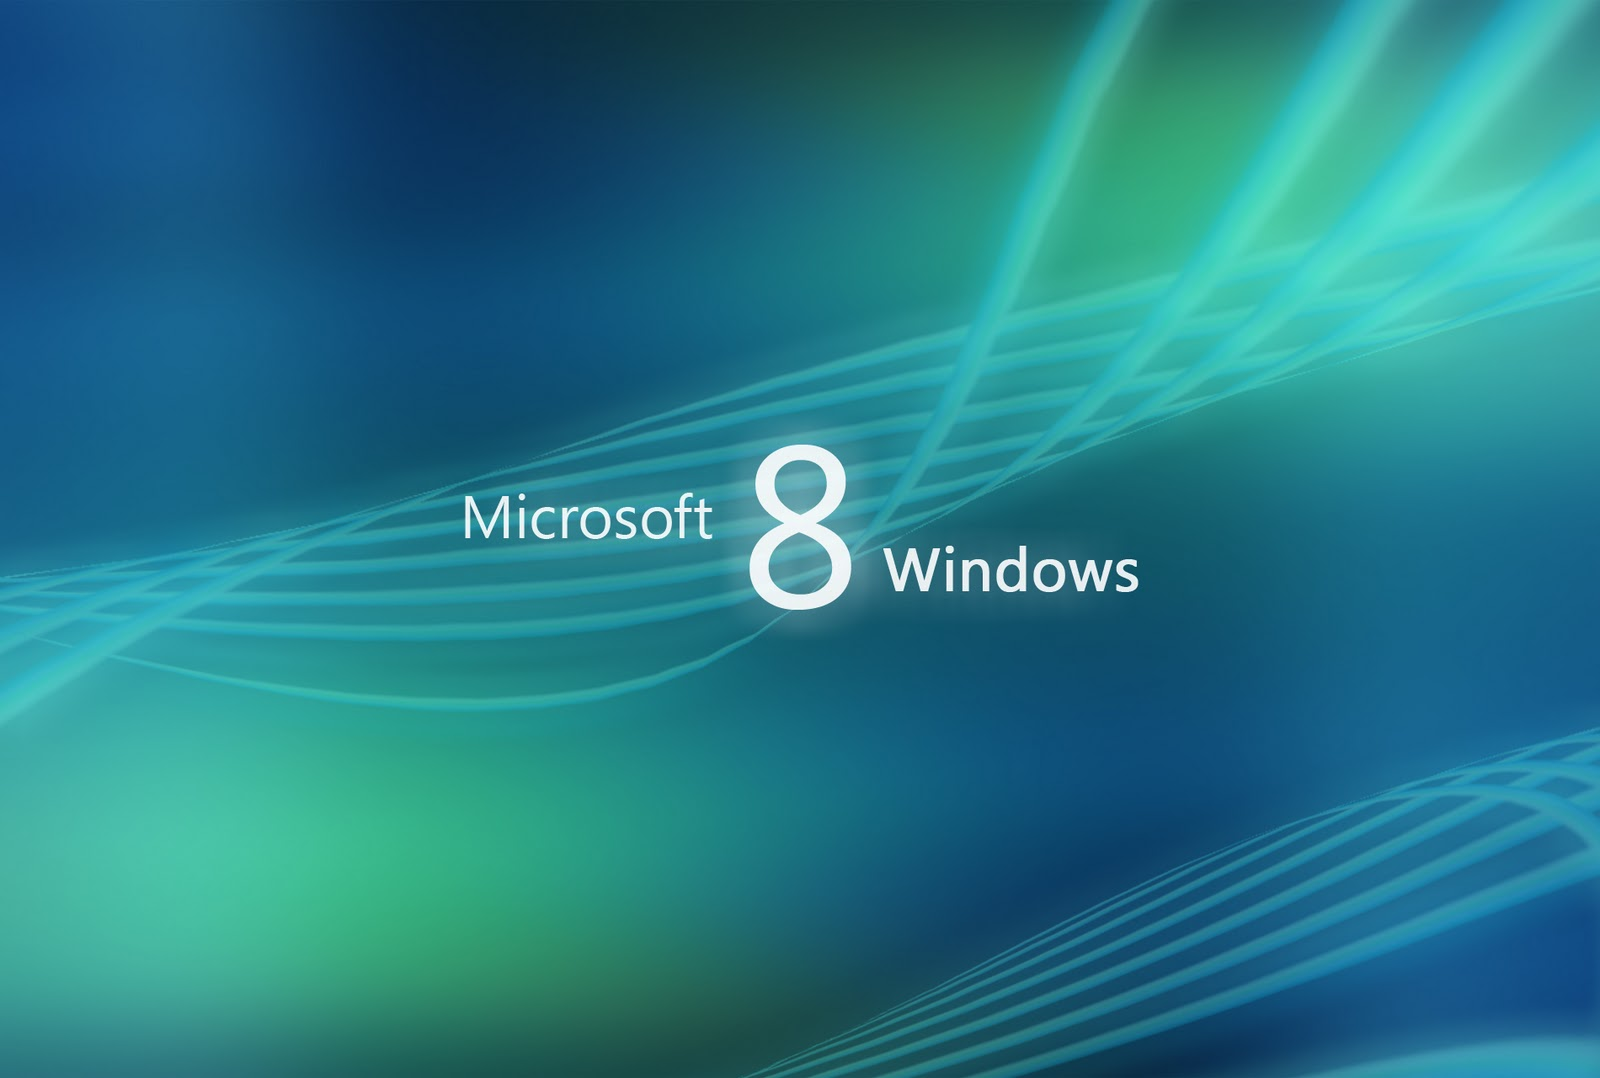 ganz wallpaper: windows 8 hd wallpaper